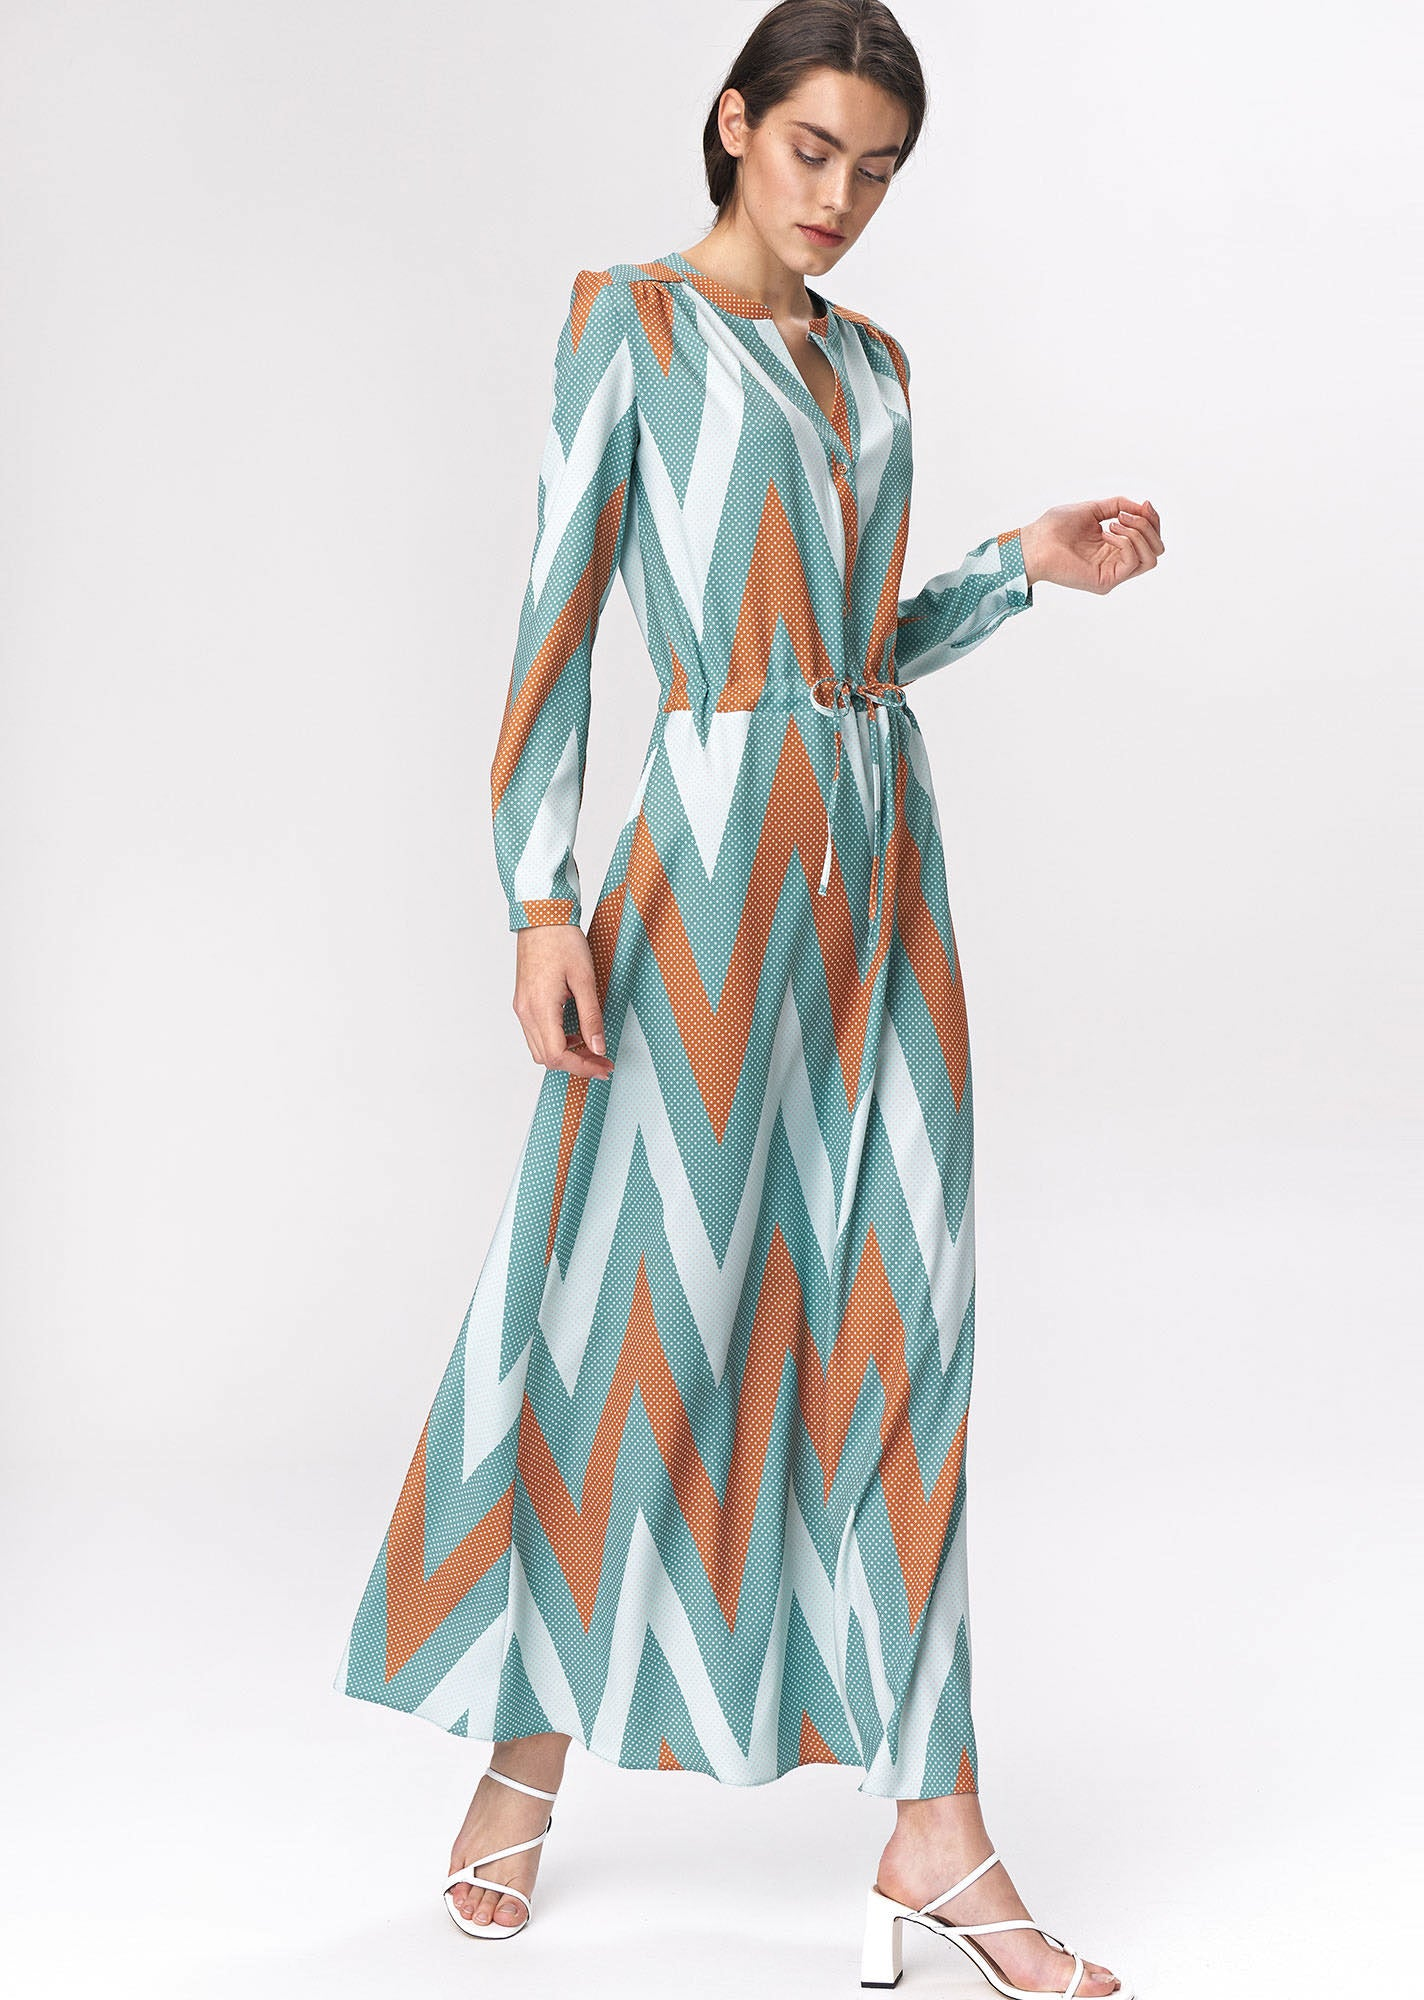 Robe Maxi Fluide Imprimee Manches Longues Serree A La Taille Mademoiselle Grenade